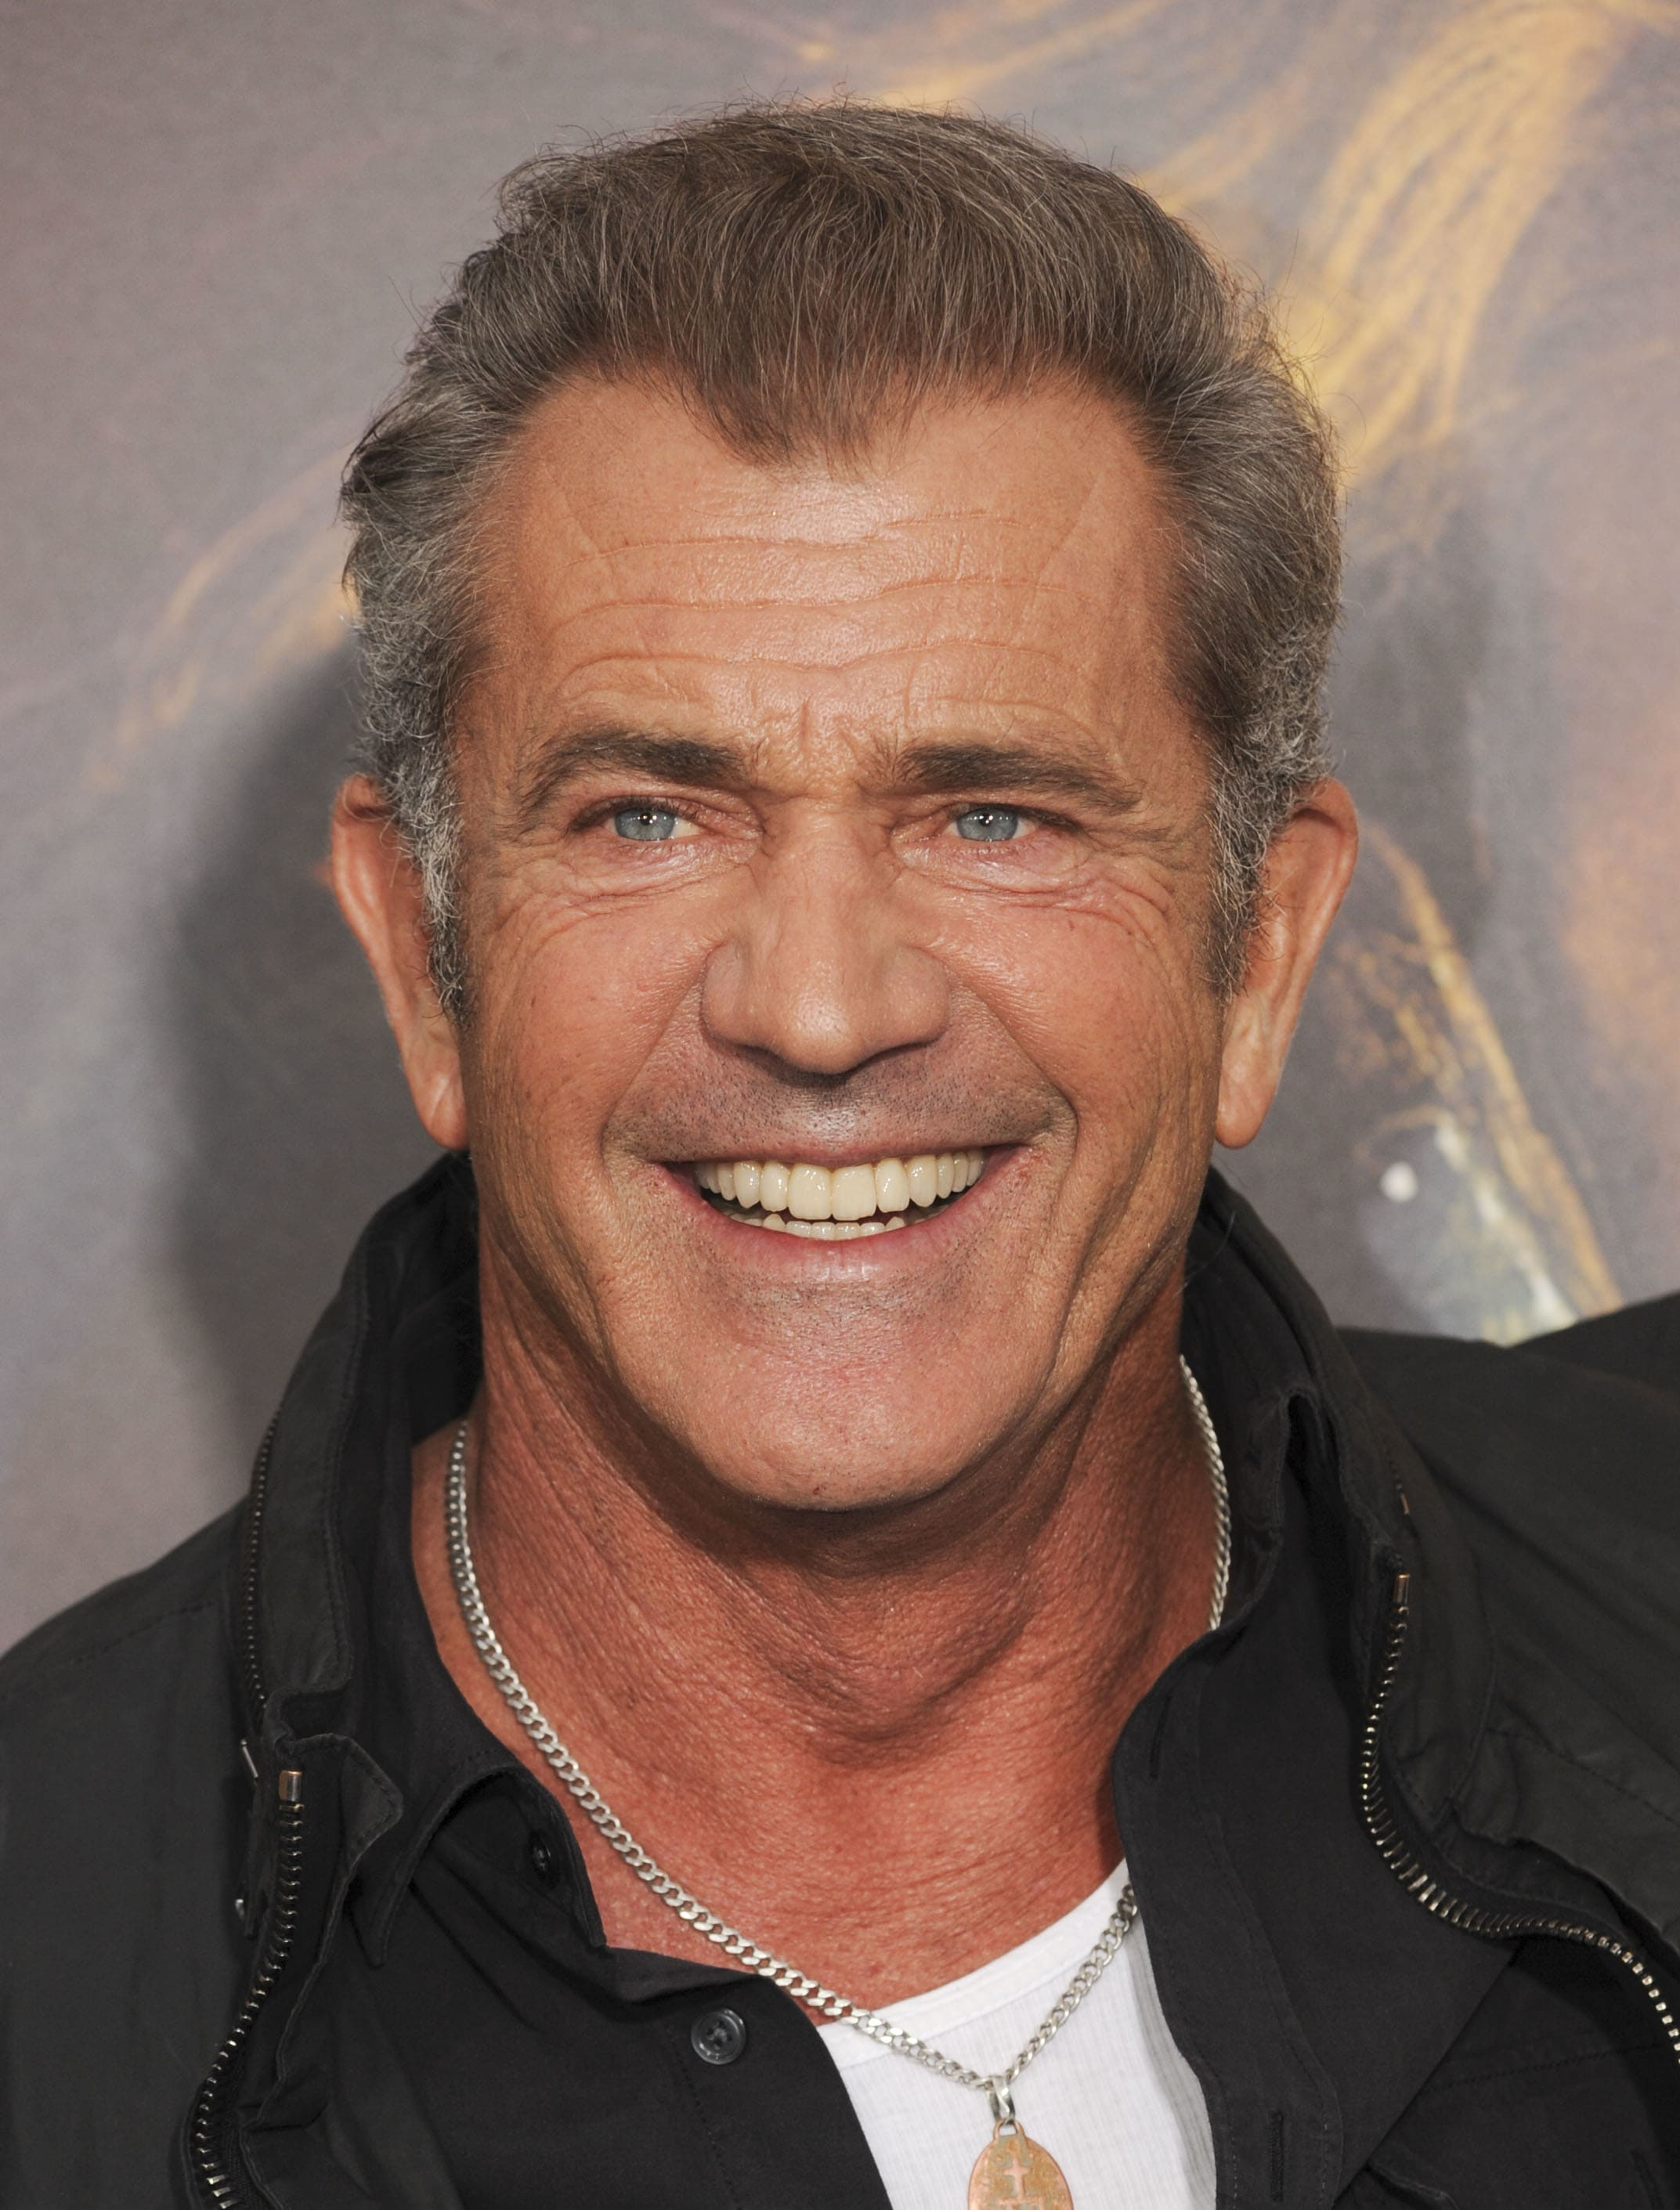 Mel gibson drunk at whole foods with fork in mouth the mel gibson drunk at whole foods with fork in mouth the hollywood gossip thecheapjerseys Choice Image